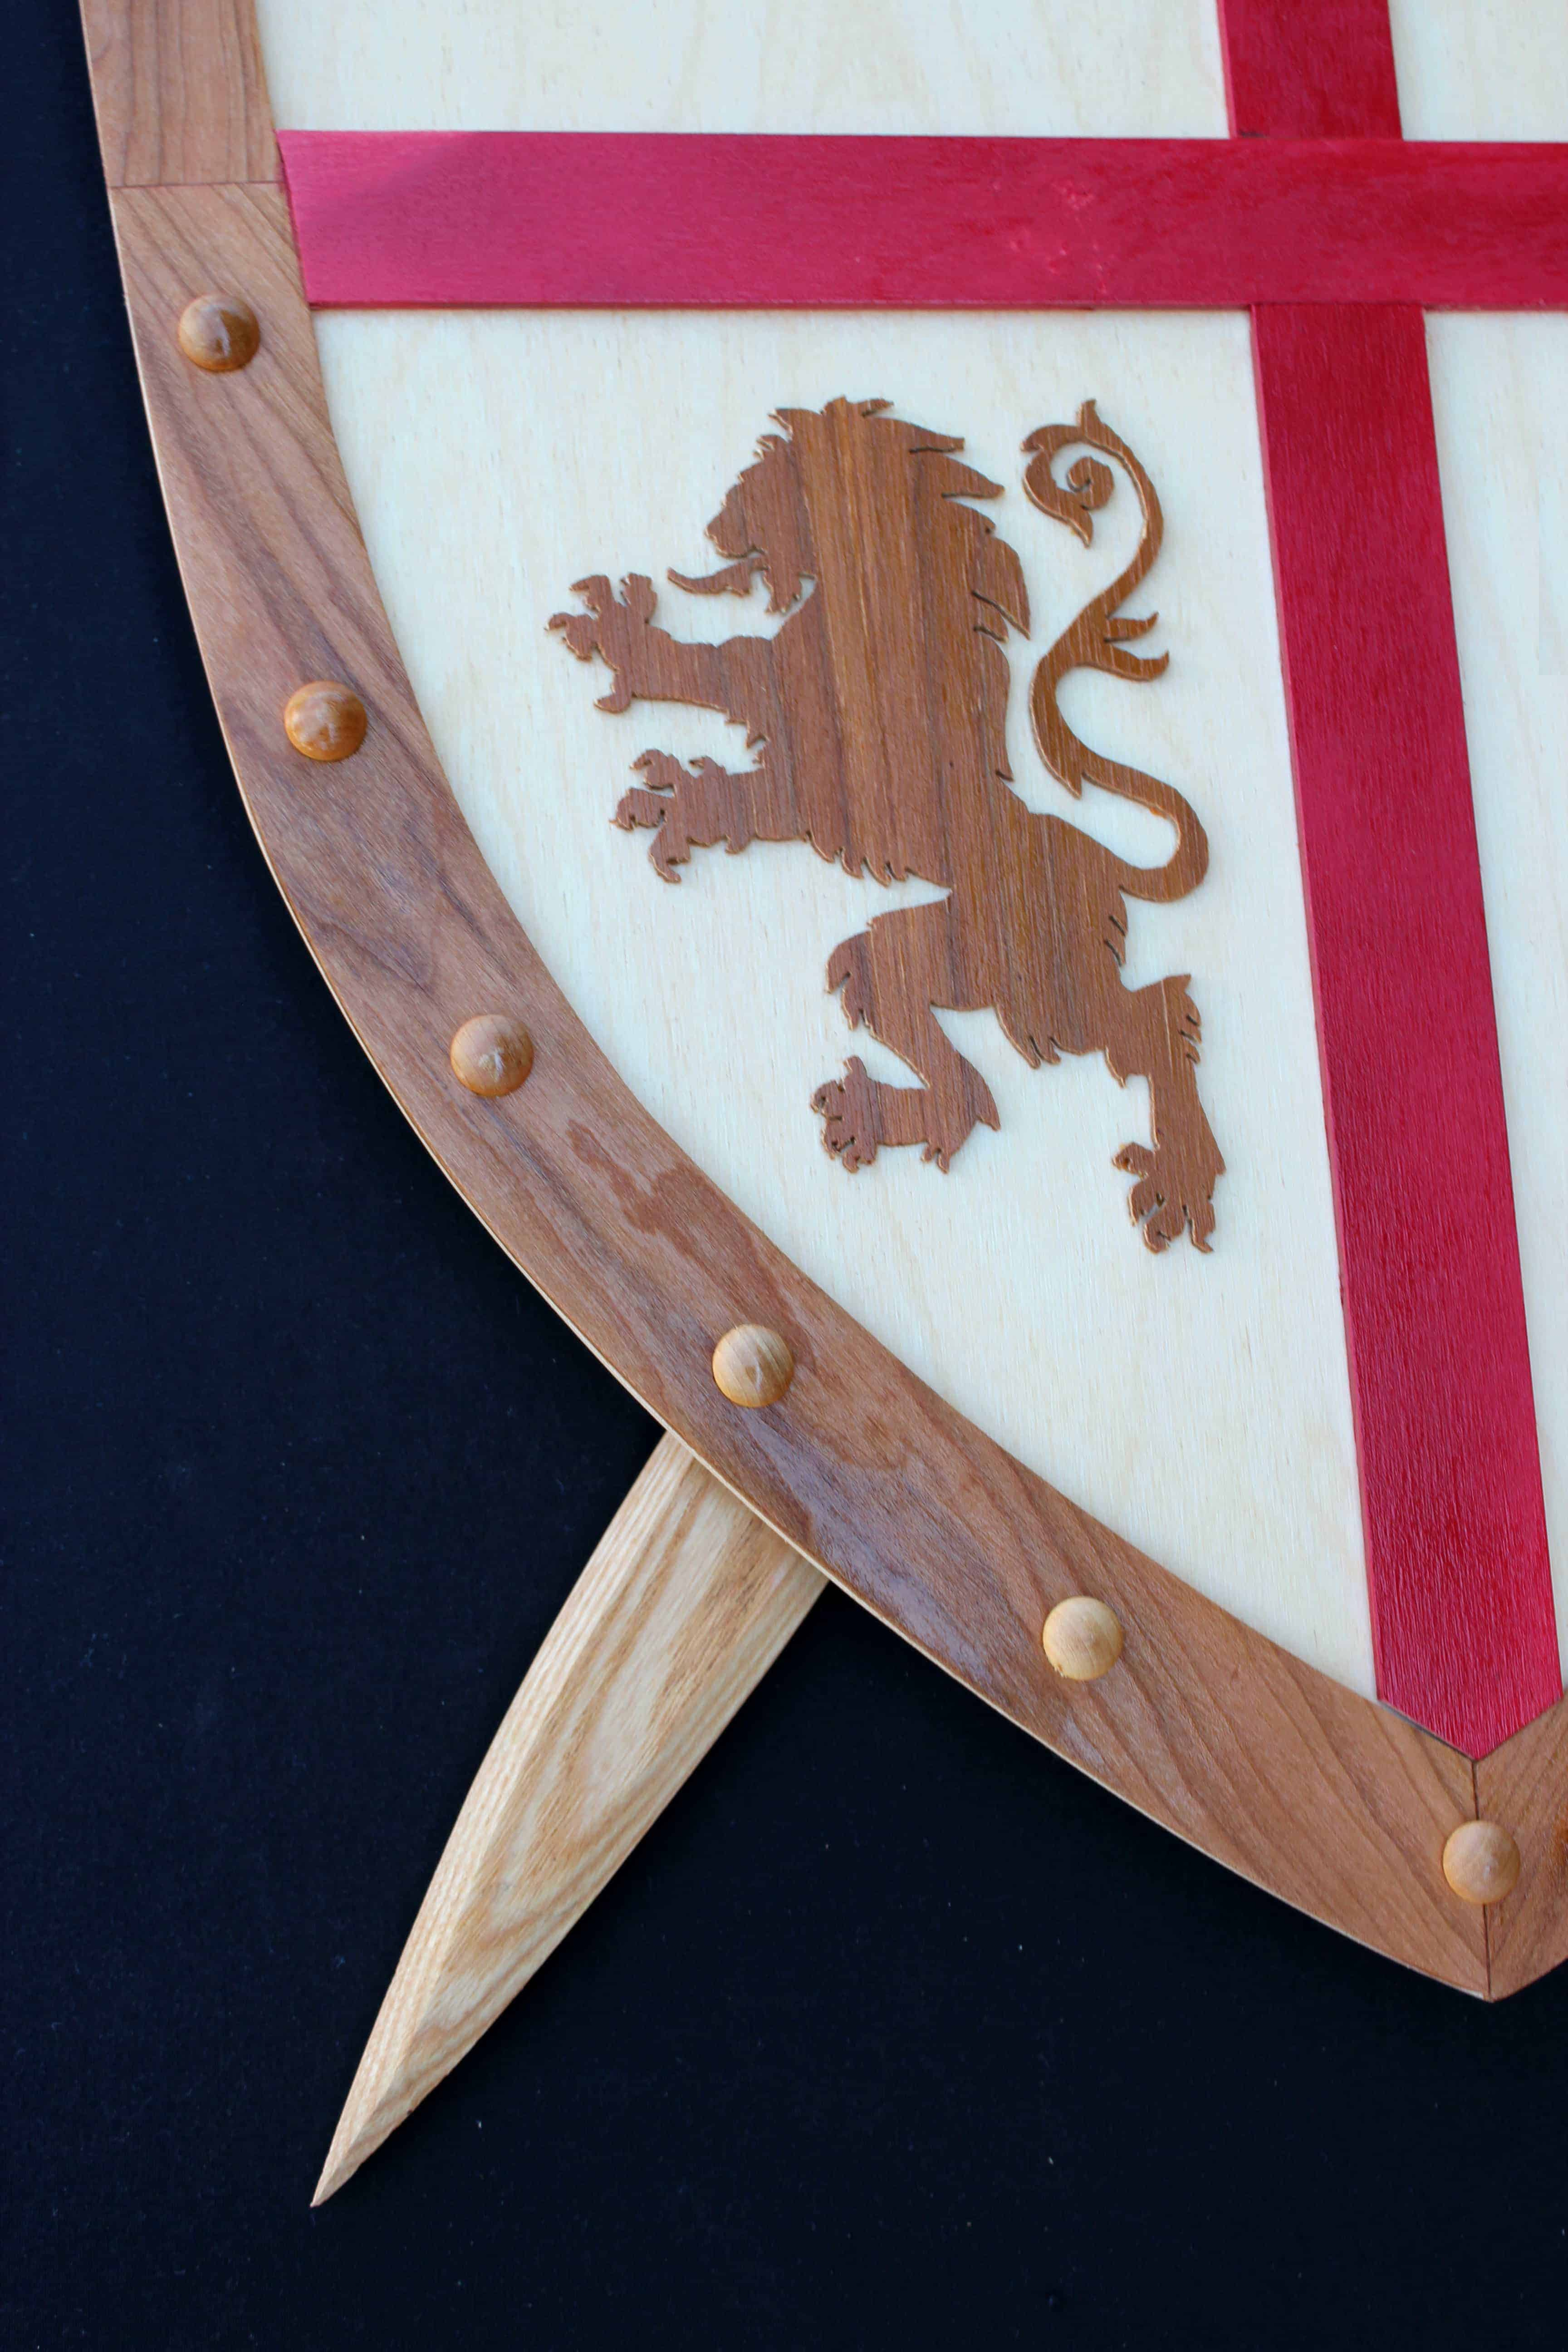 Sword and shield woodworking plan, tight view of lion insignia